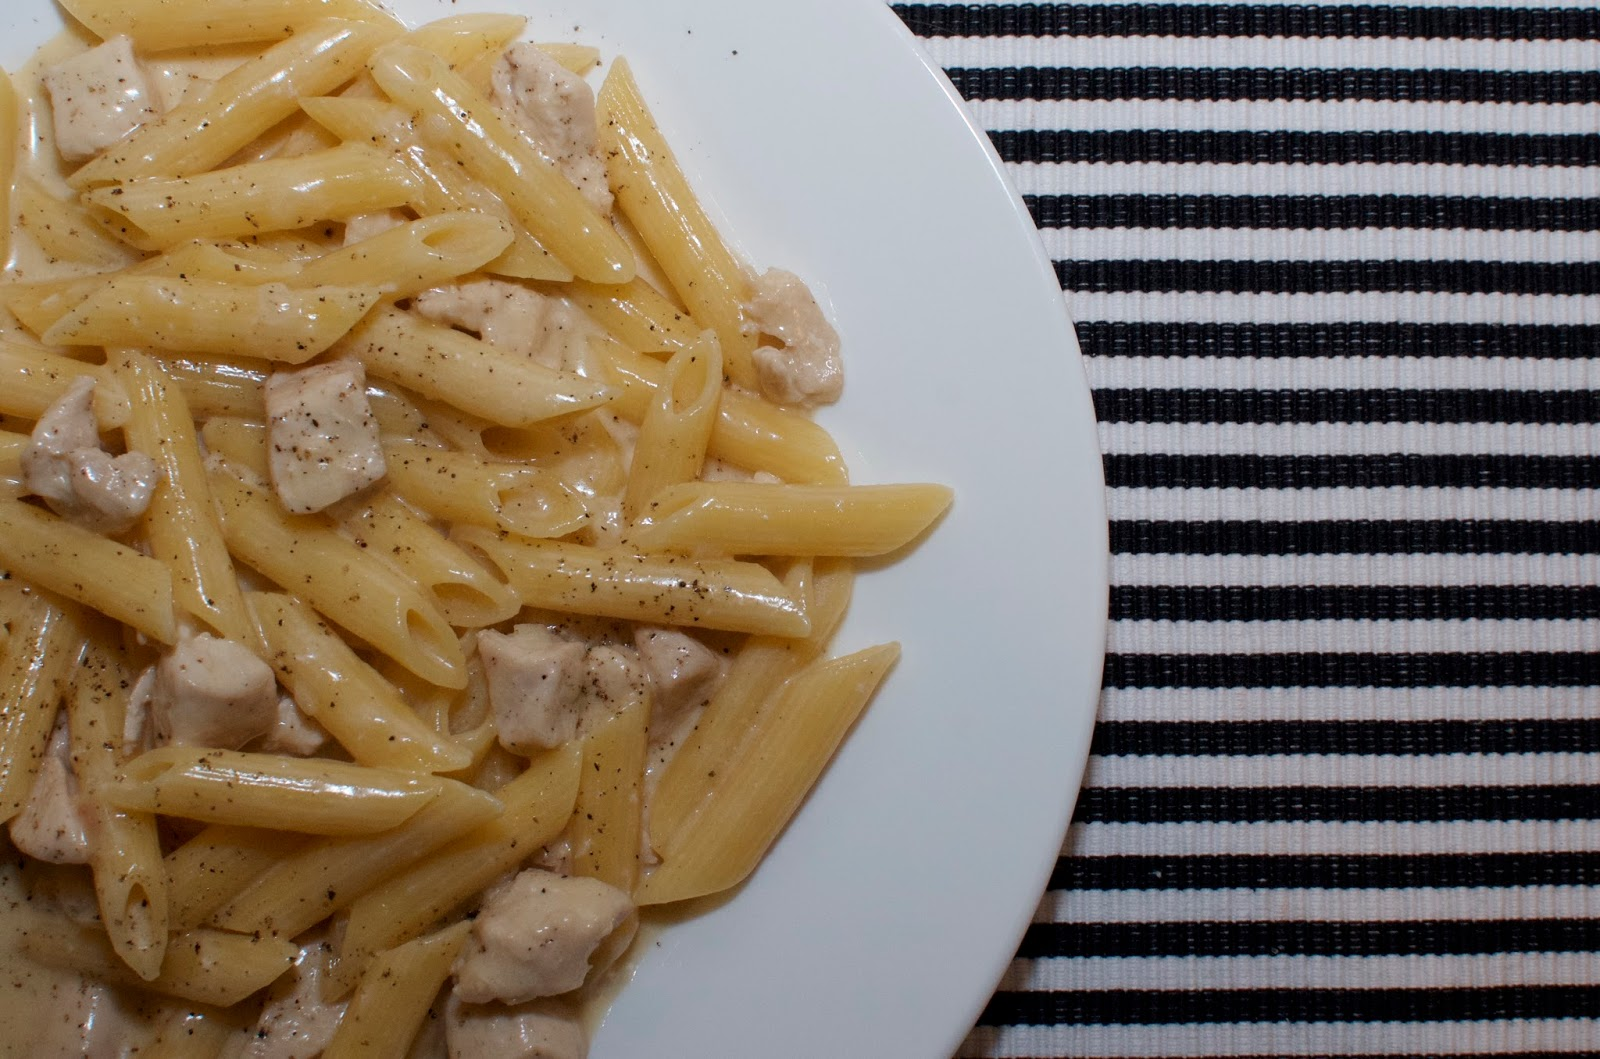 Mushroom-Free One-Pot Creamy Chicken Marsala & Penne on black & white striped placemat with white plate